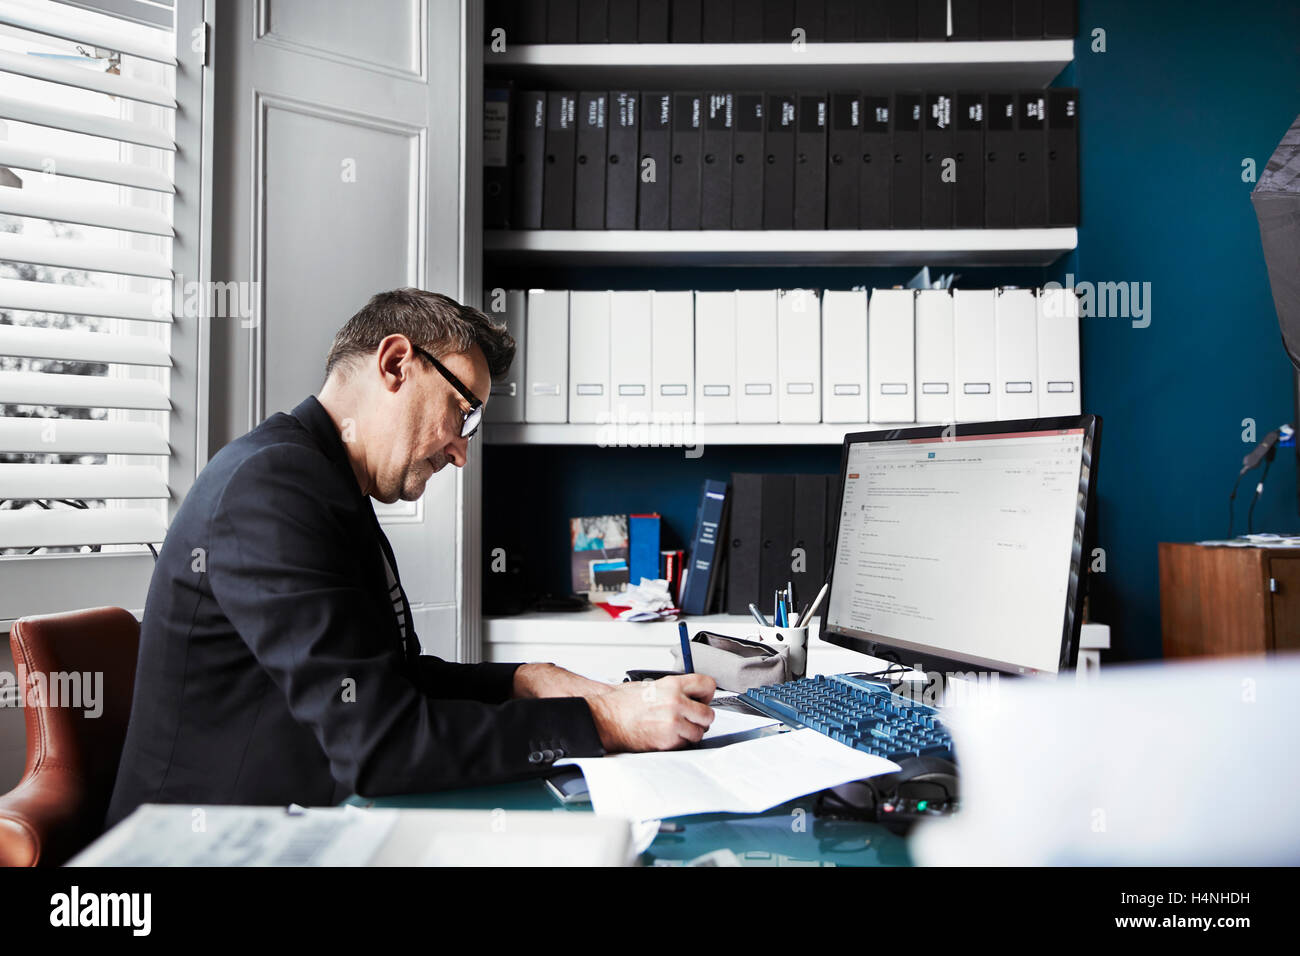 A man sitting at a desk in office, writing on a piece of paper. Neat rows of files on shelves and papers on the - Stock Image